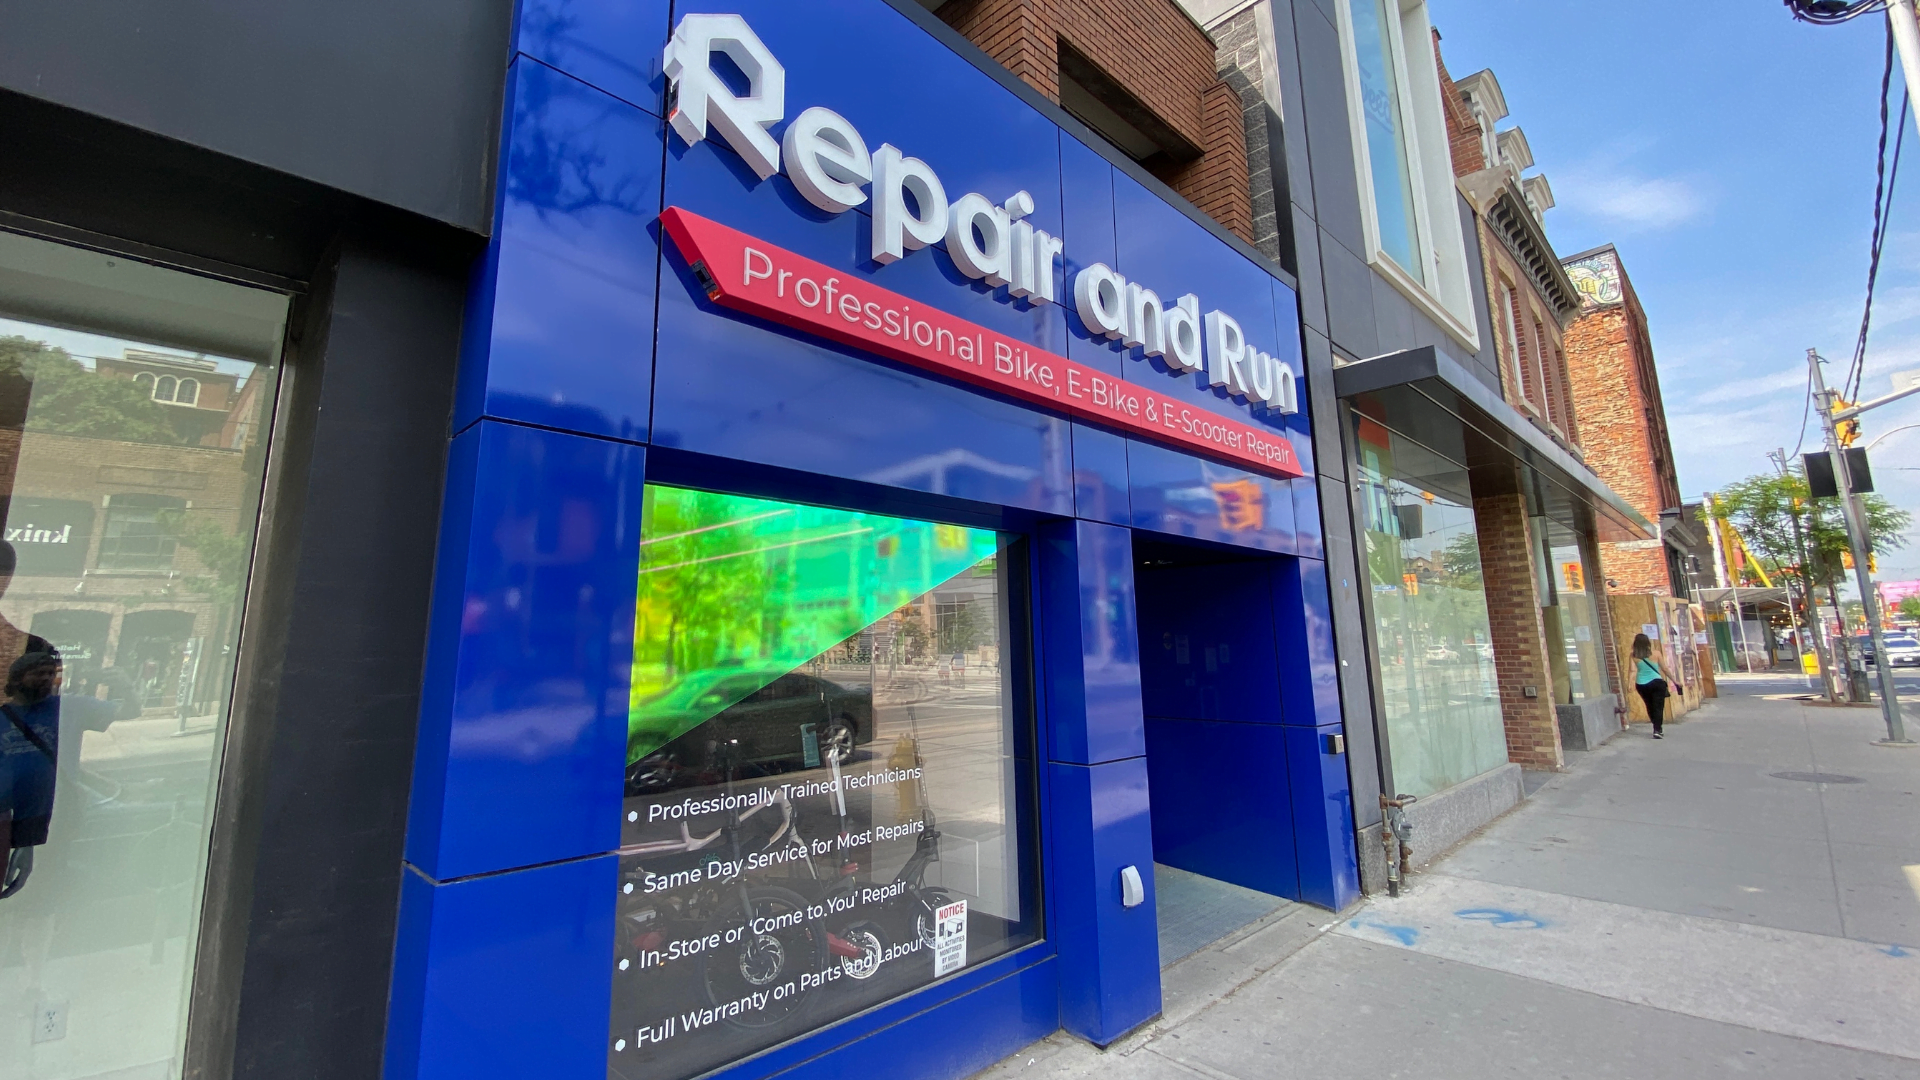 France-Based 'Repair and Run' Expands into Canada with 1st Location and Plans for More